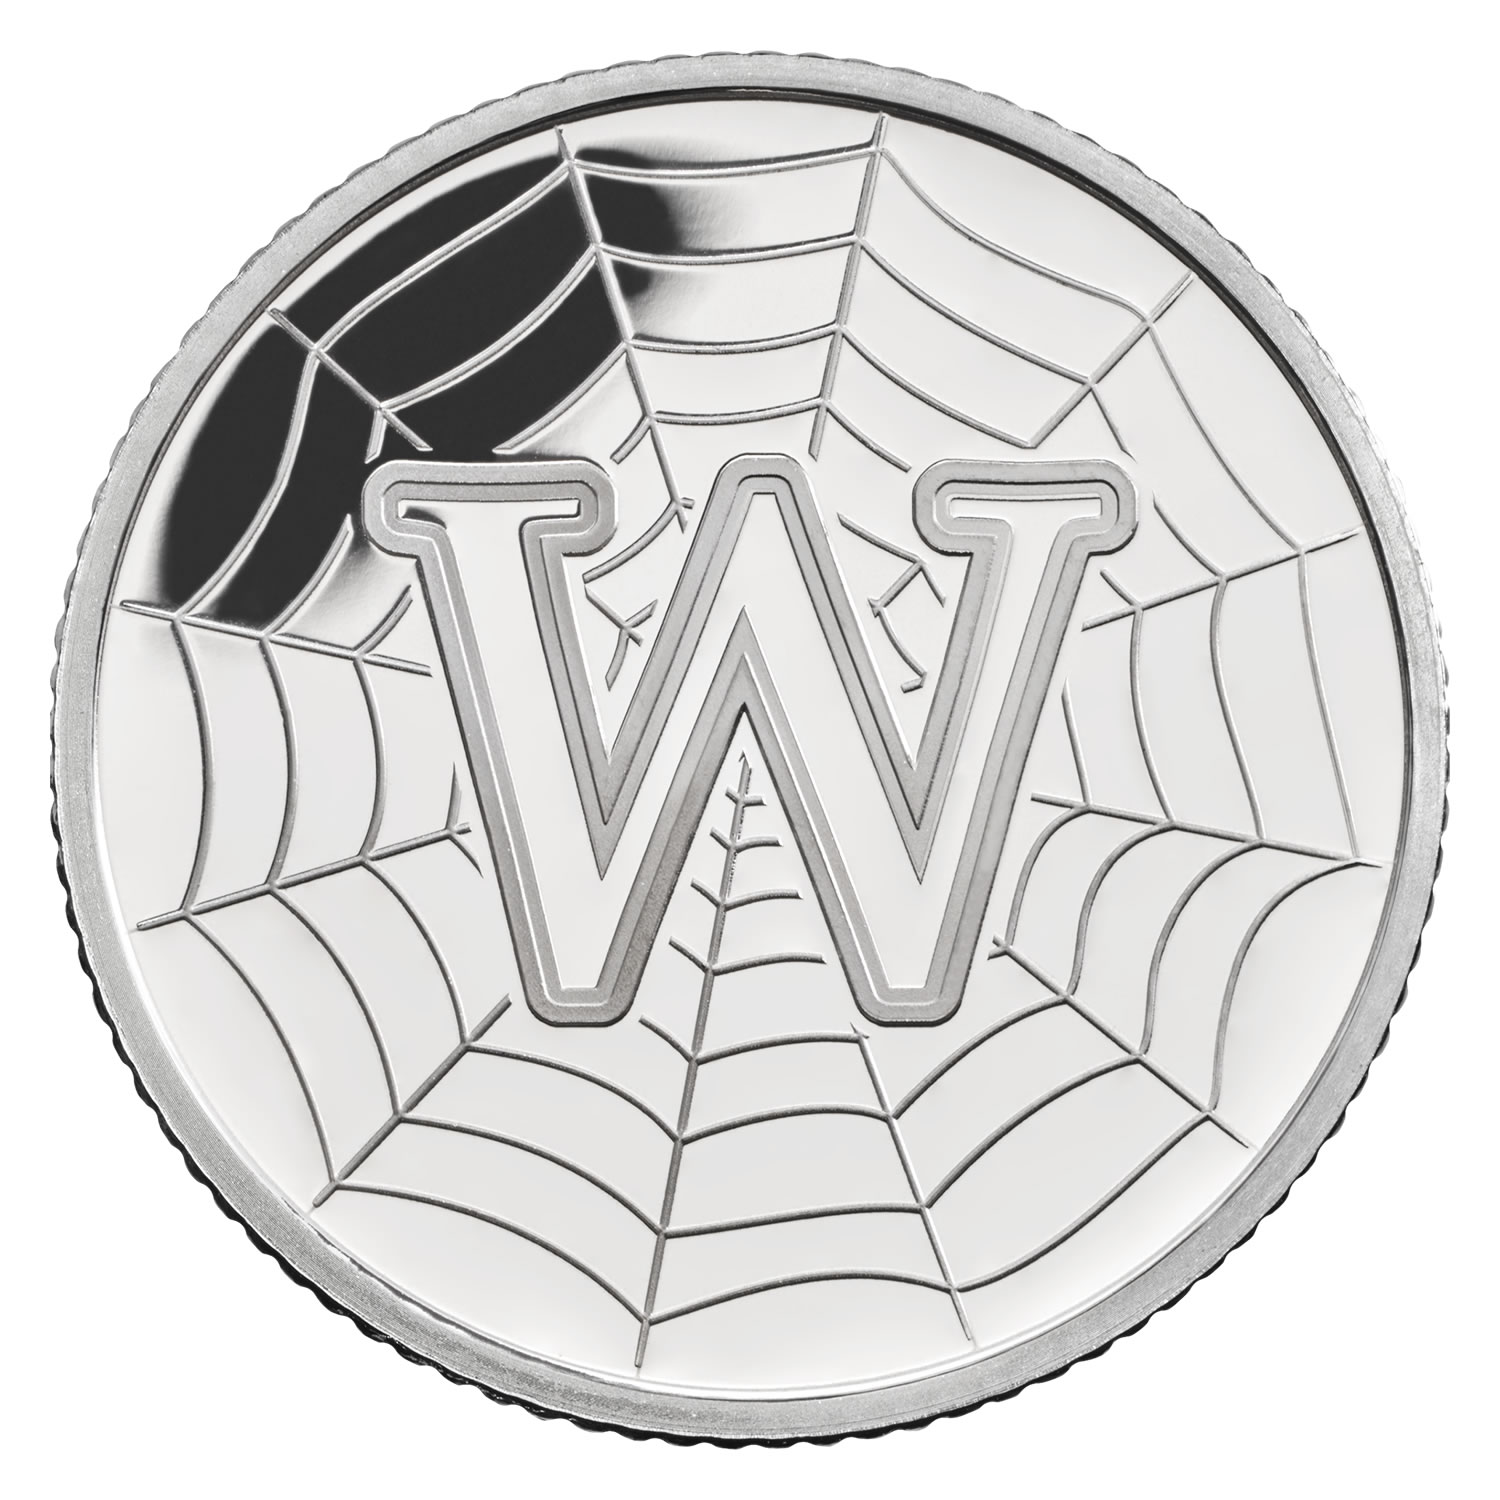 W - World Wide Web 2018 UK 10p Silver Proof Coin